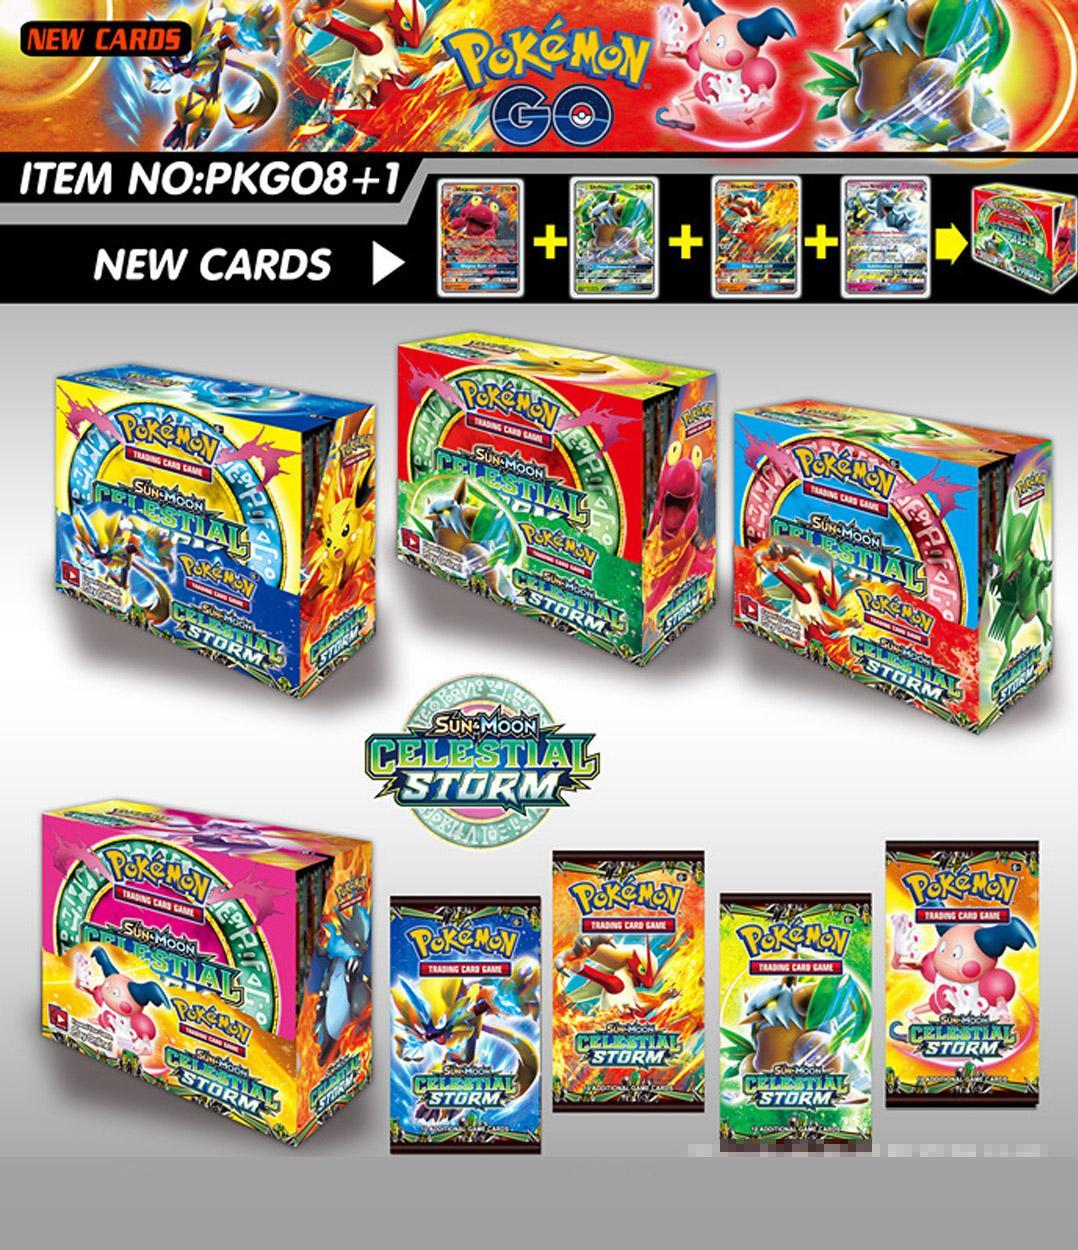 New 324pcs/box Pokemon Cards TCG: Sun & Moon Celestial Storm 36-Pack Booster Box Trading Card Game Kids Toys